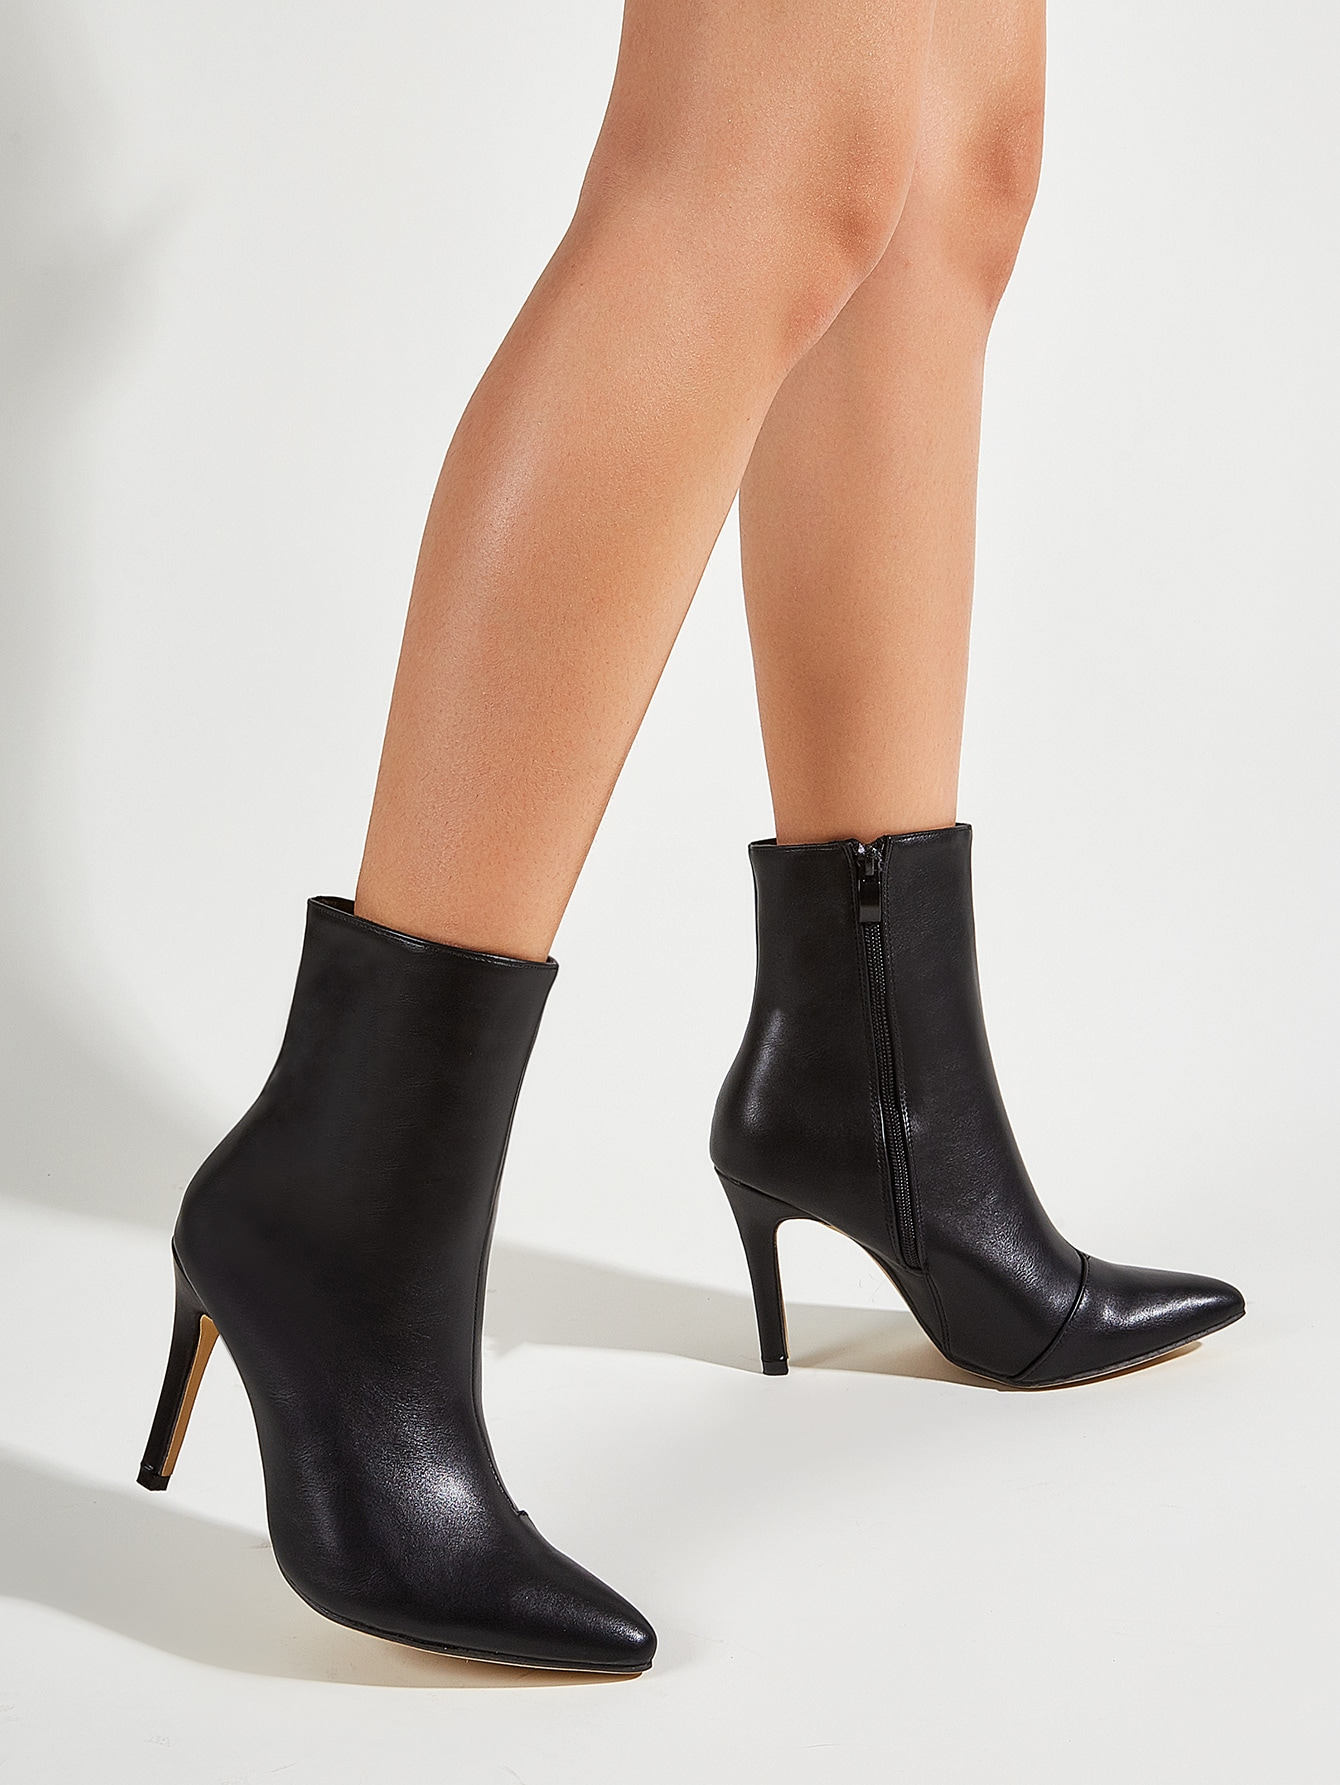 Point Toe Side Zip Stiletto Heeled Boots